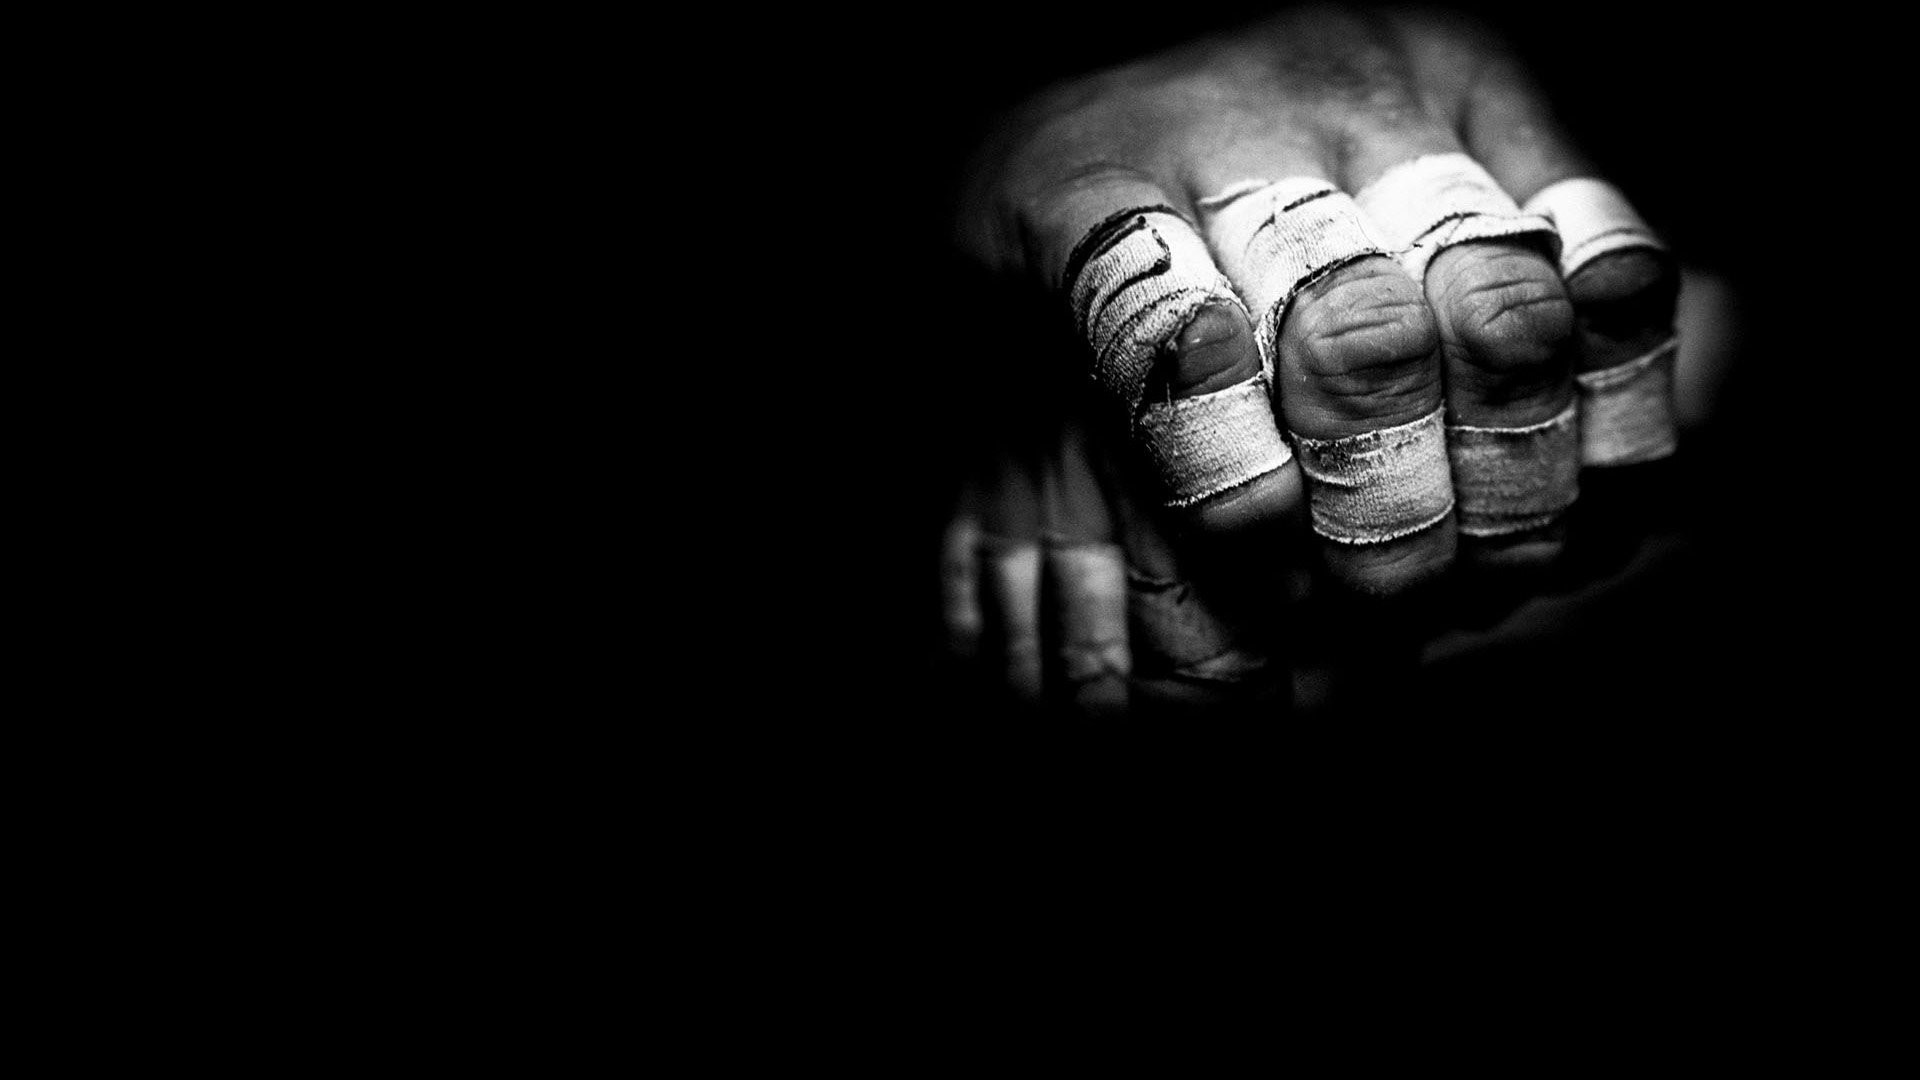 mma wallpapers 1920x1080